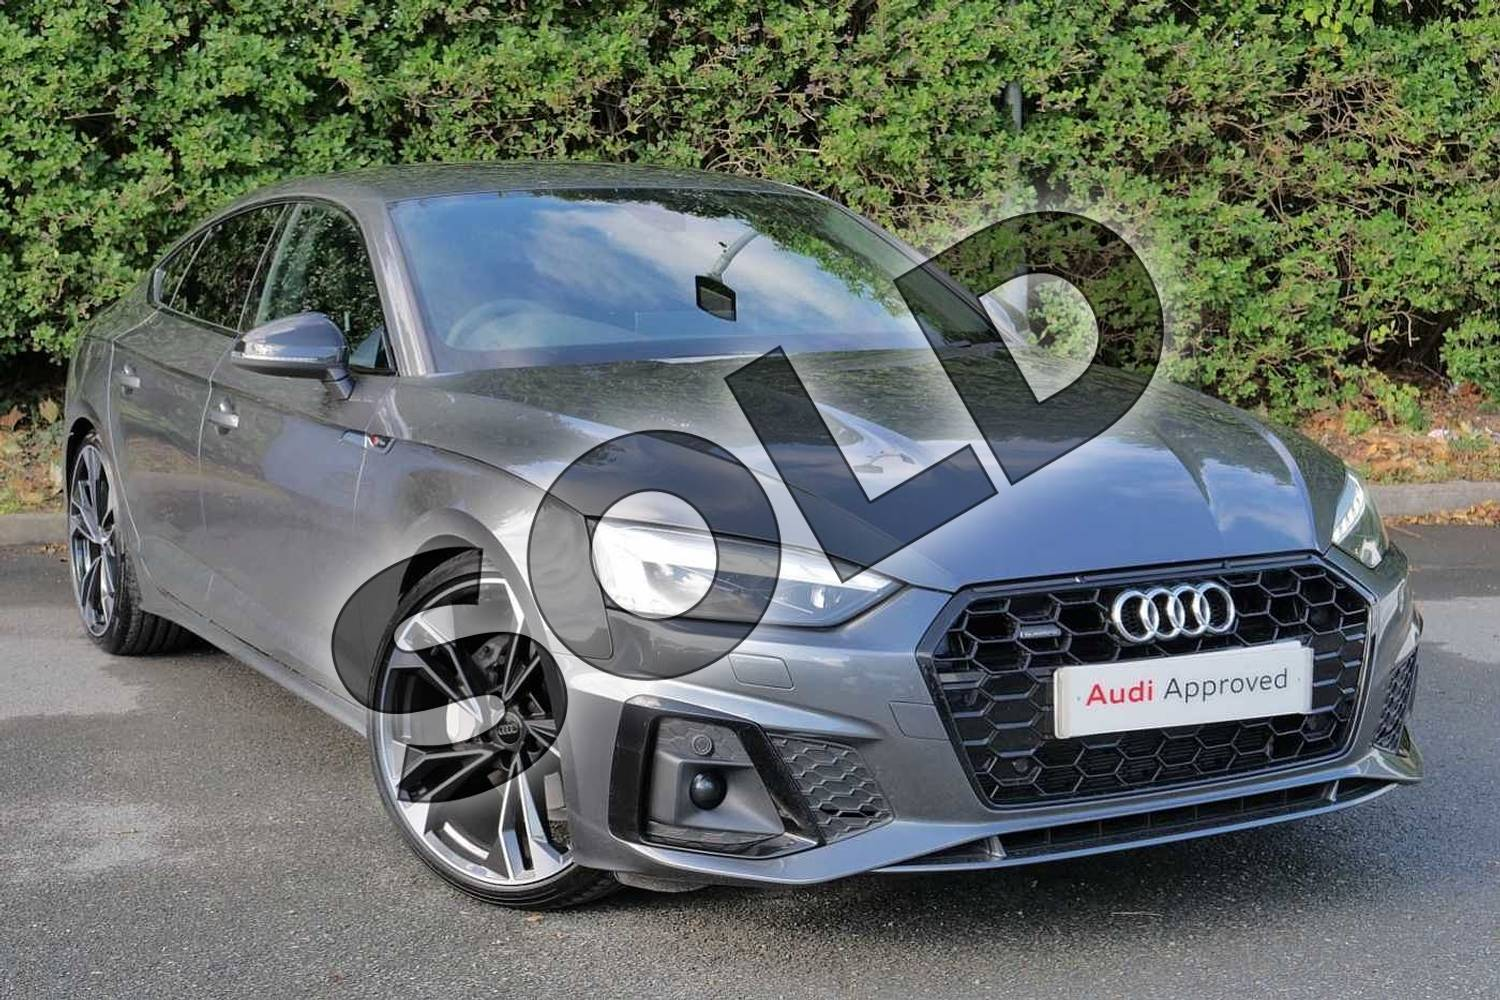 2020 Audi A5 Sportback Special Editions 40 TDI Quattro Edition 1 5dr S Tronic in Daytona Grey Pearlescent at Worcester Audi